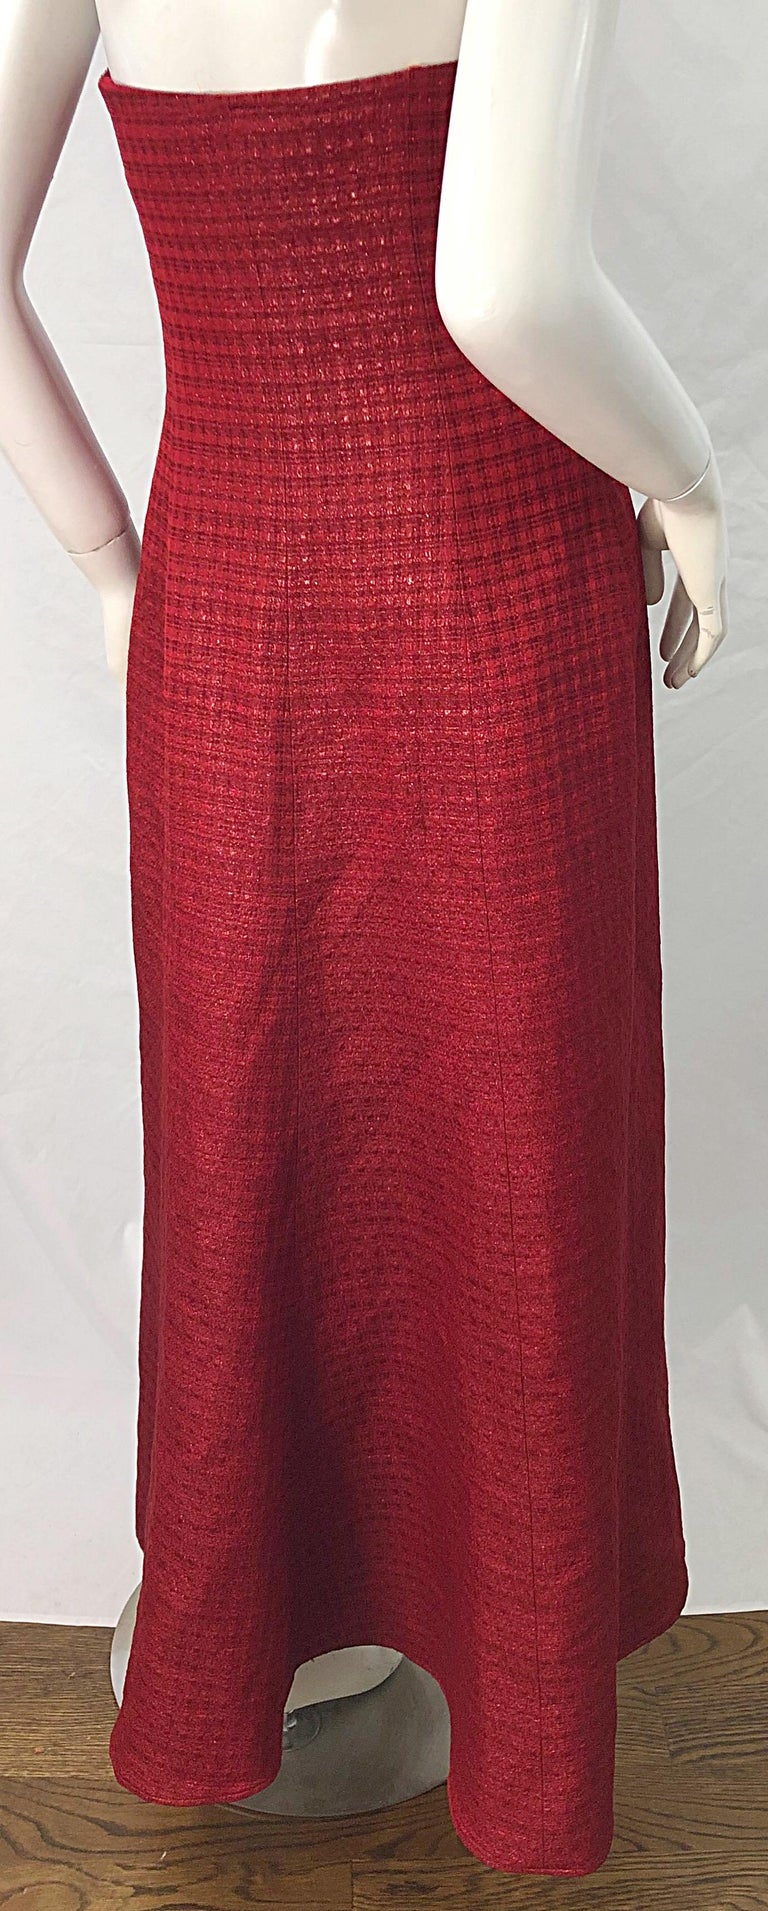 1990s Louis Feraud Cranberry Red Strapless Vintage 90s Silk + Wool Gown Dress For Sale 6